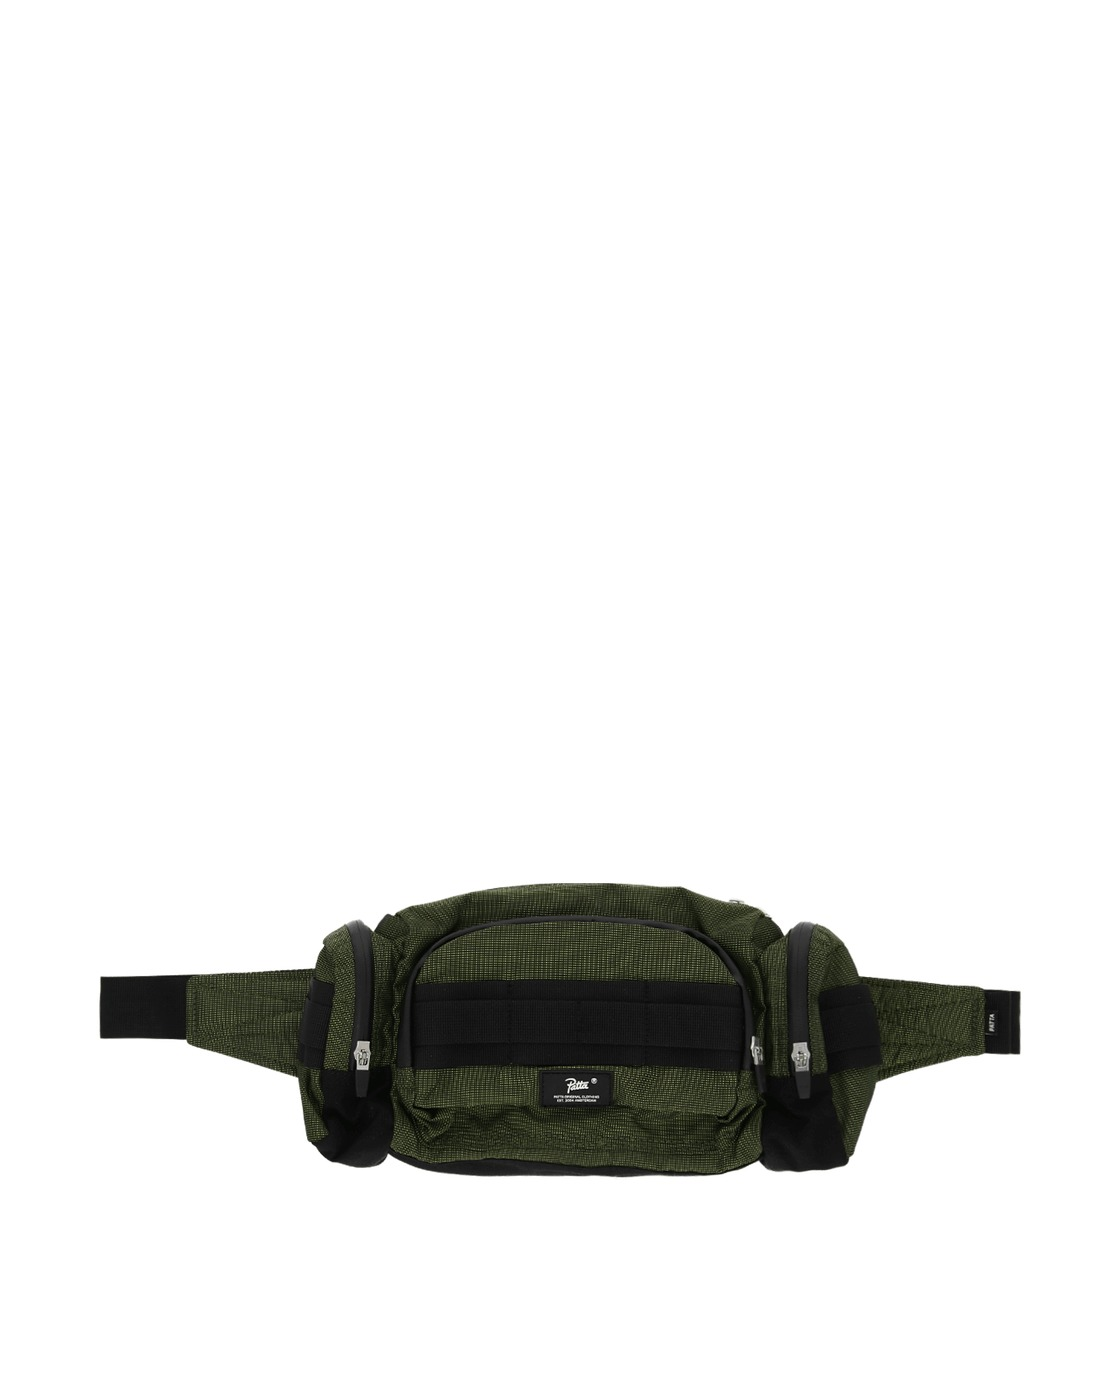 Photo: Patta Hi Vis Tactical Waistbag Black/Safety Yellow